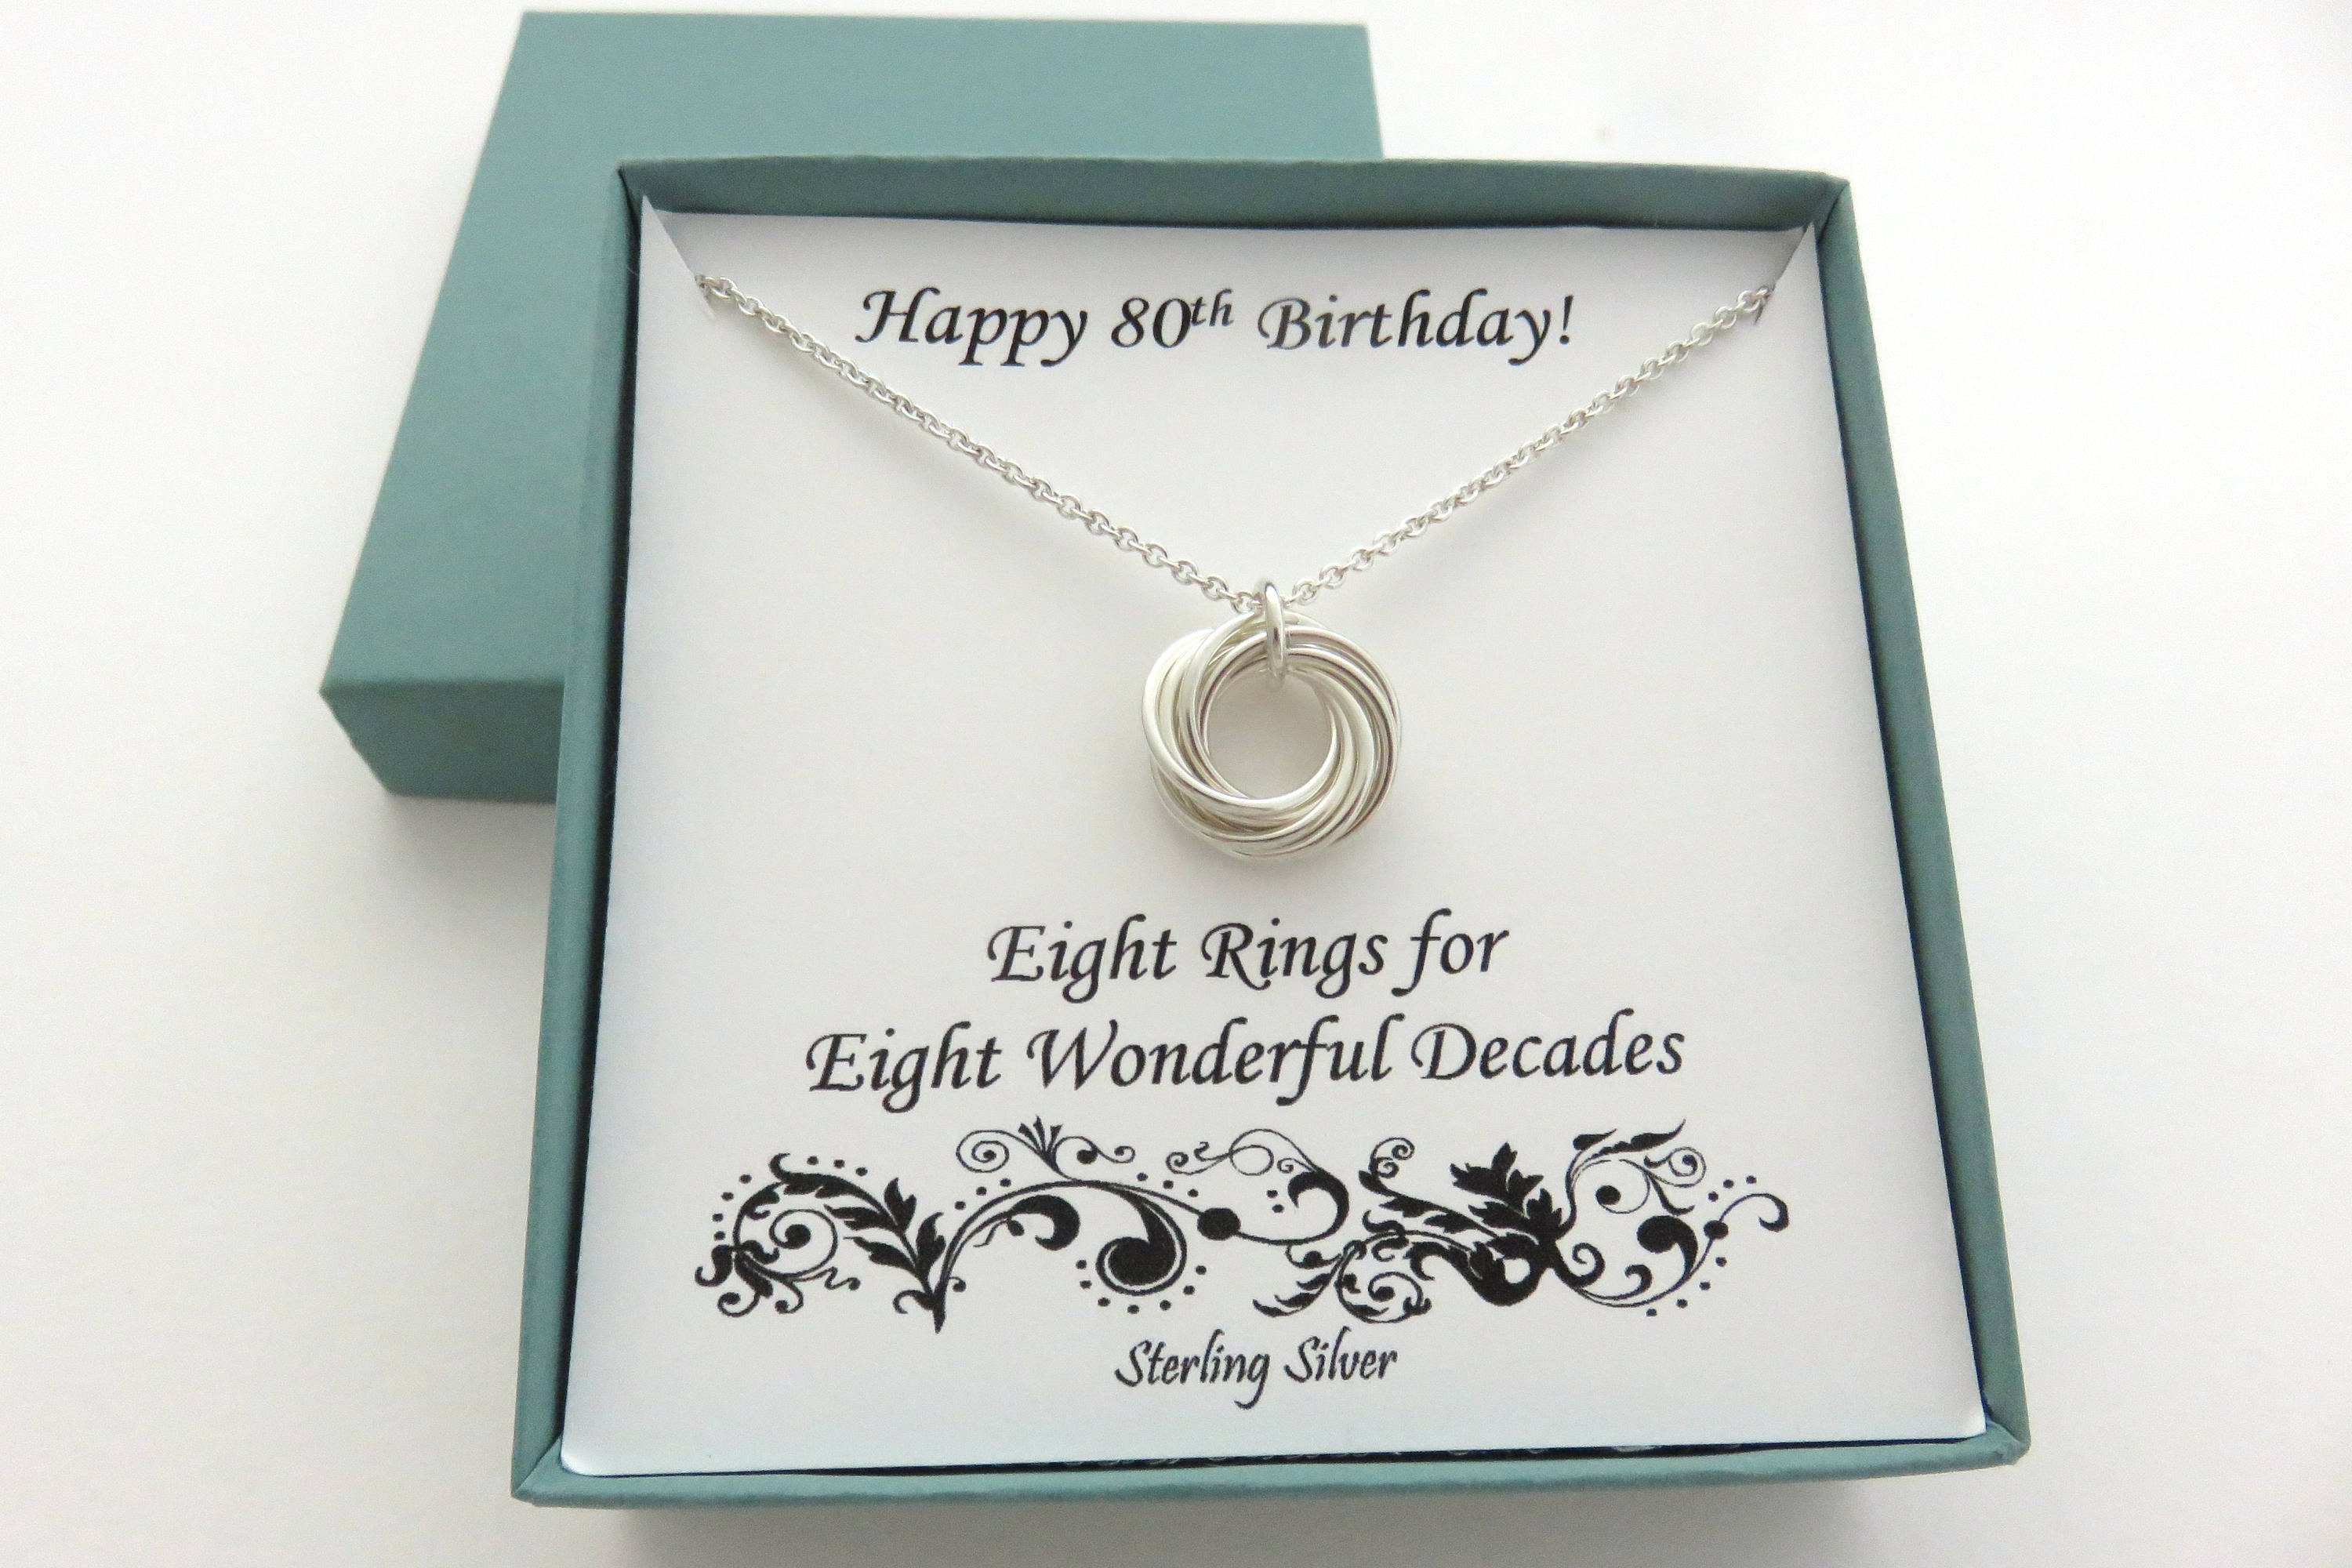 923890474e892 80th Birthday Gift, Sterling Silver Necklace, 80th Birthday, Eight Ring  Necklace, Birthday Jewelry, 8th Anniversary, Birthday Gifts